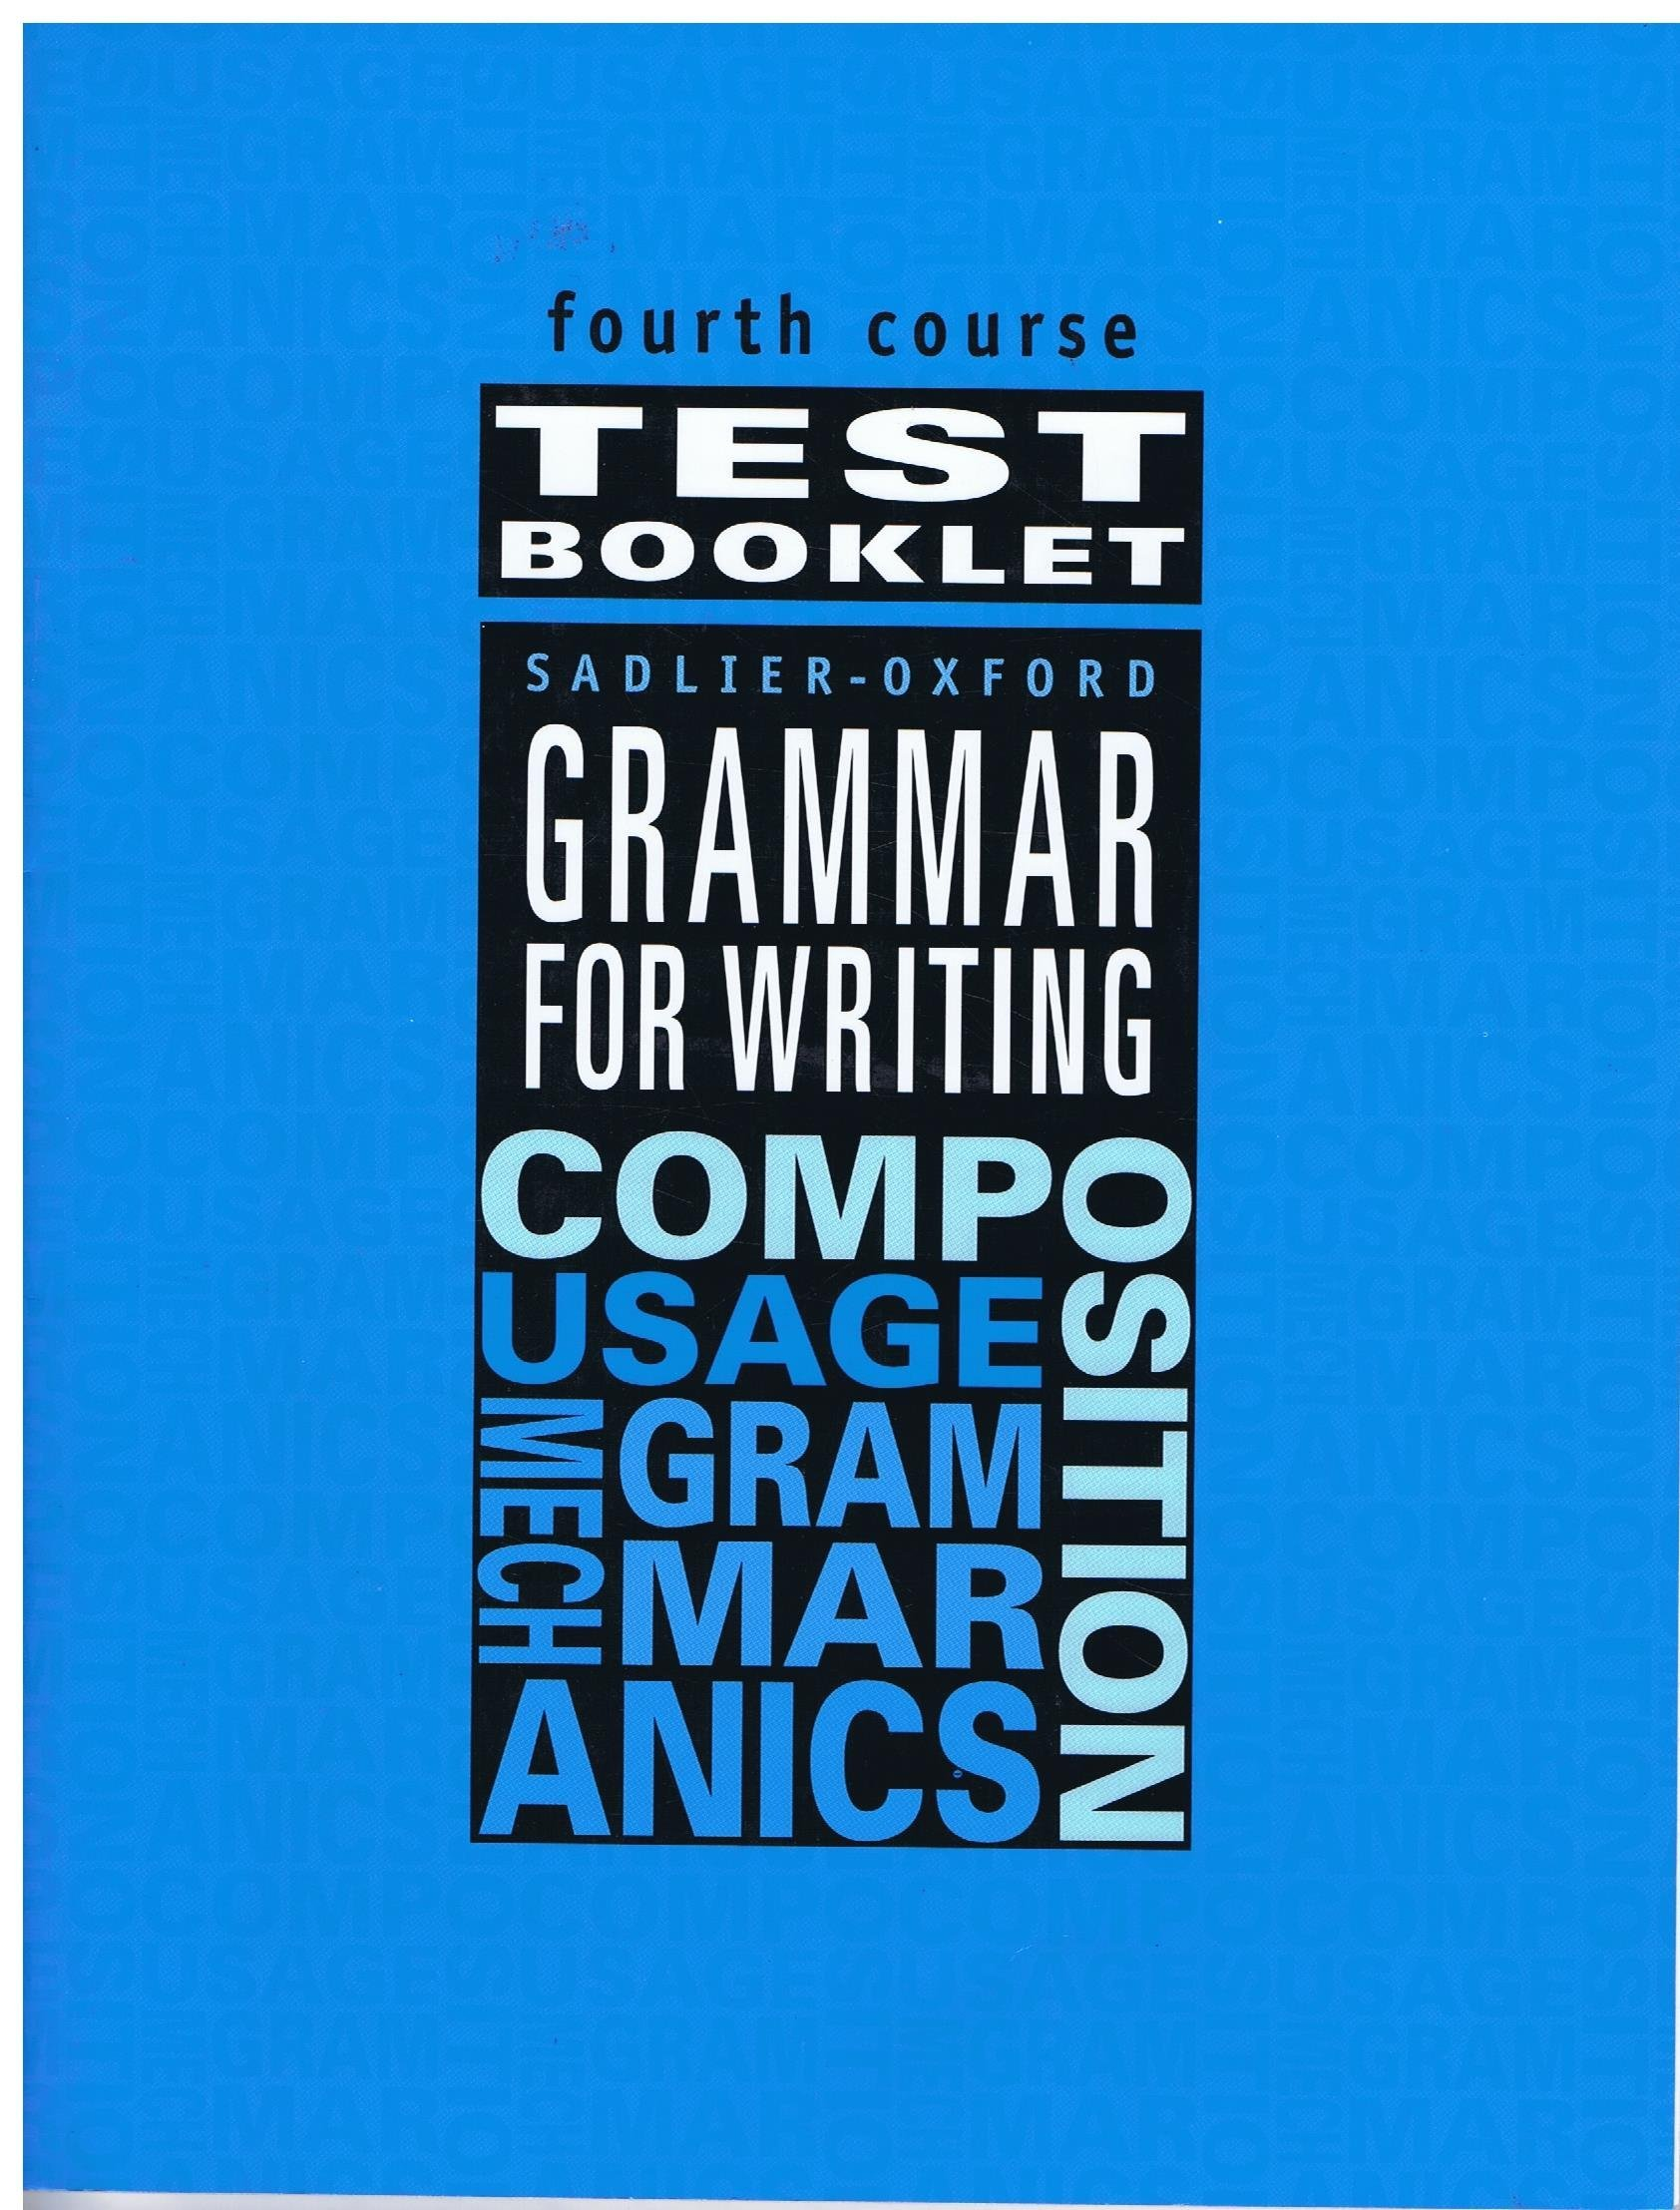 Download Sadlier Oxford Grammar for Writing Composition Test Booklet 4th course Student Edition and Answer key set Grade 9 pdf